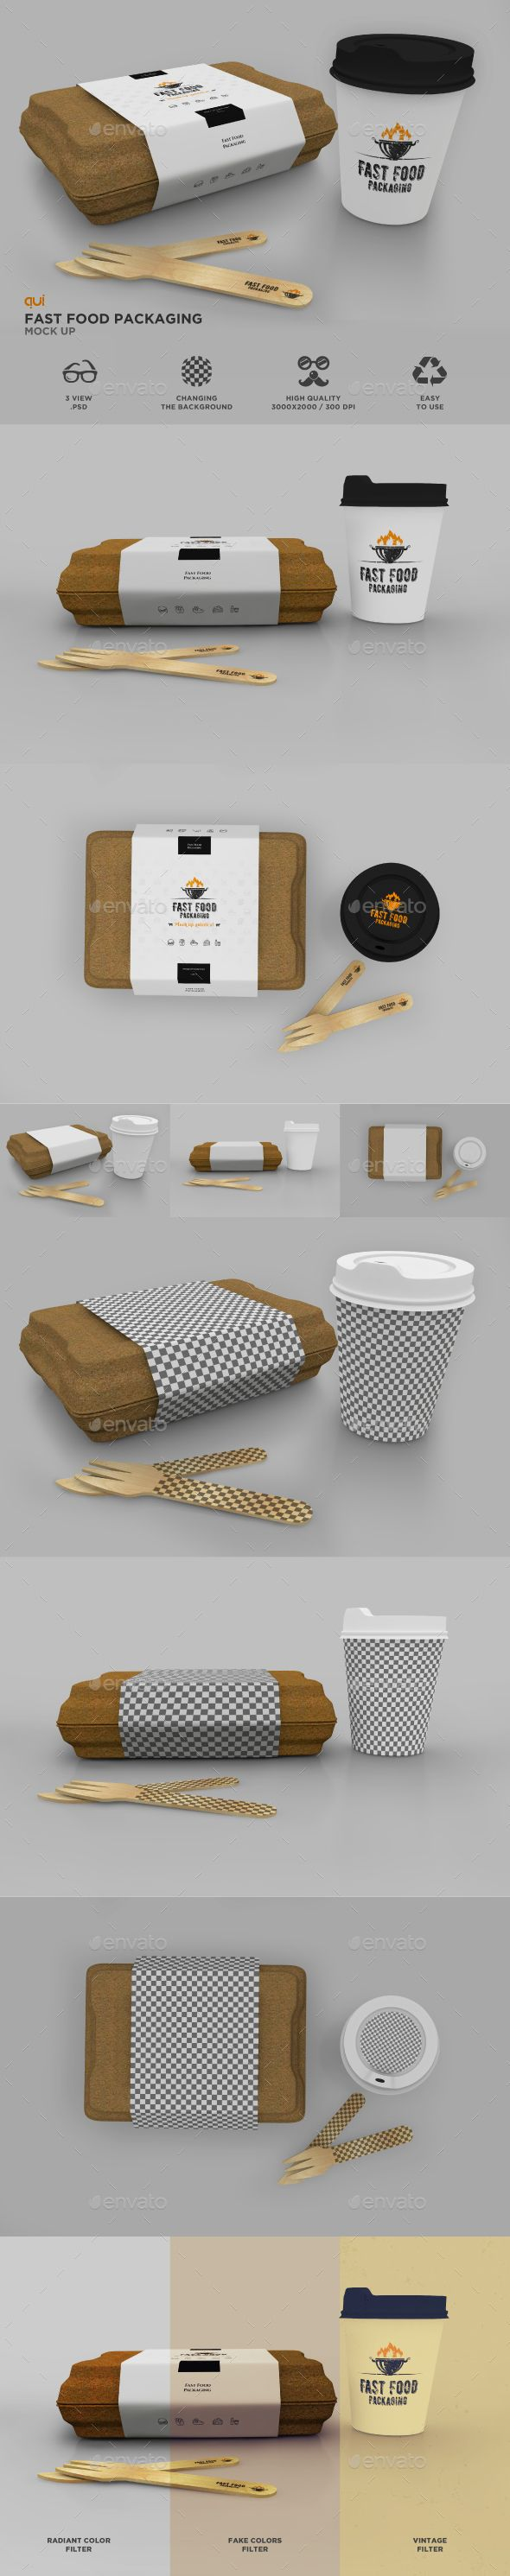 Packaging Set: Fast Food Box and Coffee Cup Mockup — Photoshop PSD #sandwich #eco • Download ➝ https://graphicriver.net/item/packaging-set-fast-food-box-and-coffee-cup-mockup/19186690?ref=pxcr